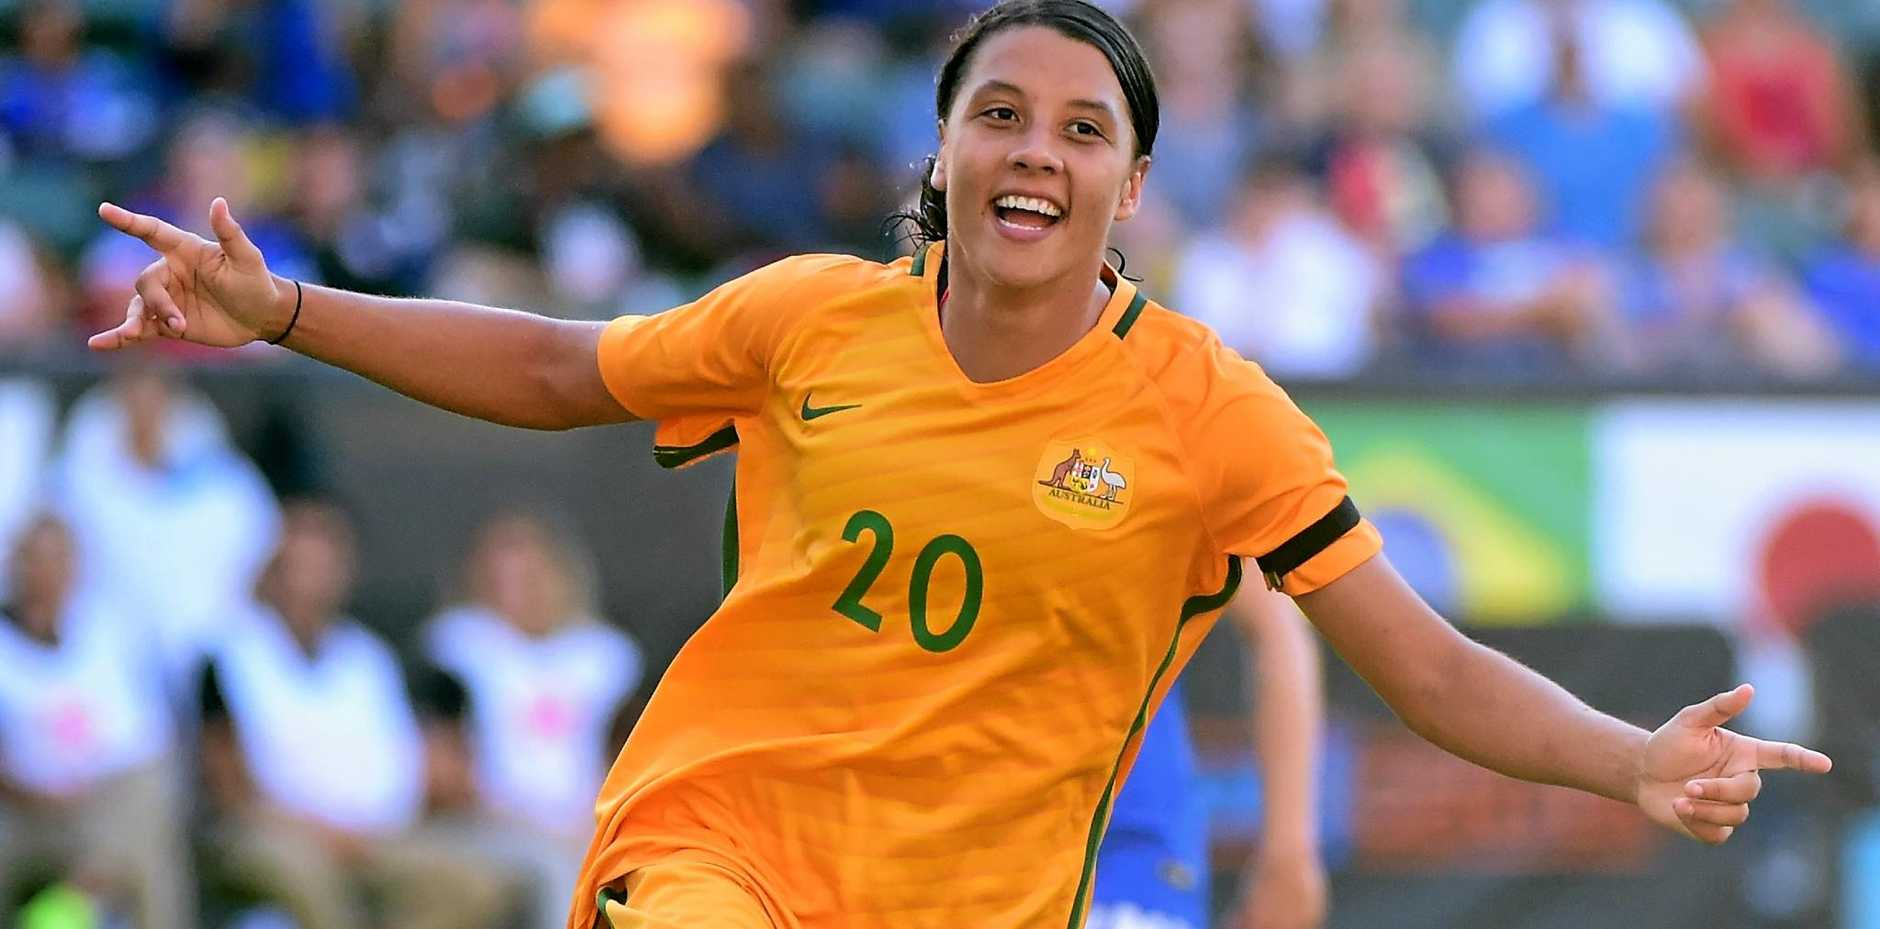 TOP STUFF: Sam Kerr celebrates her goal to take a 6-1 lead over Brazil.